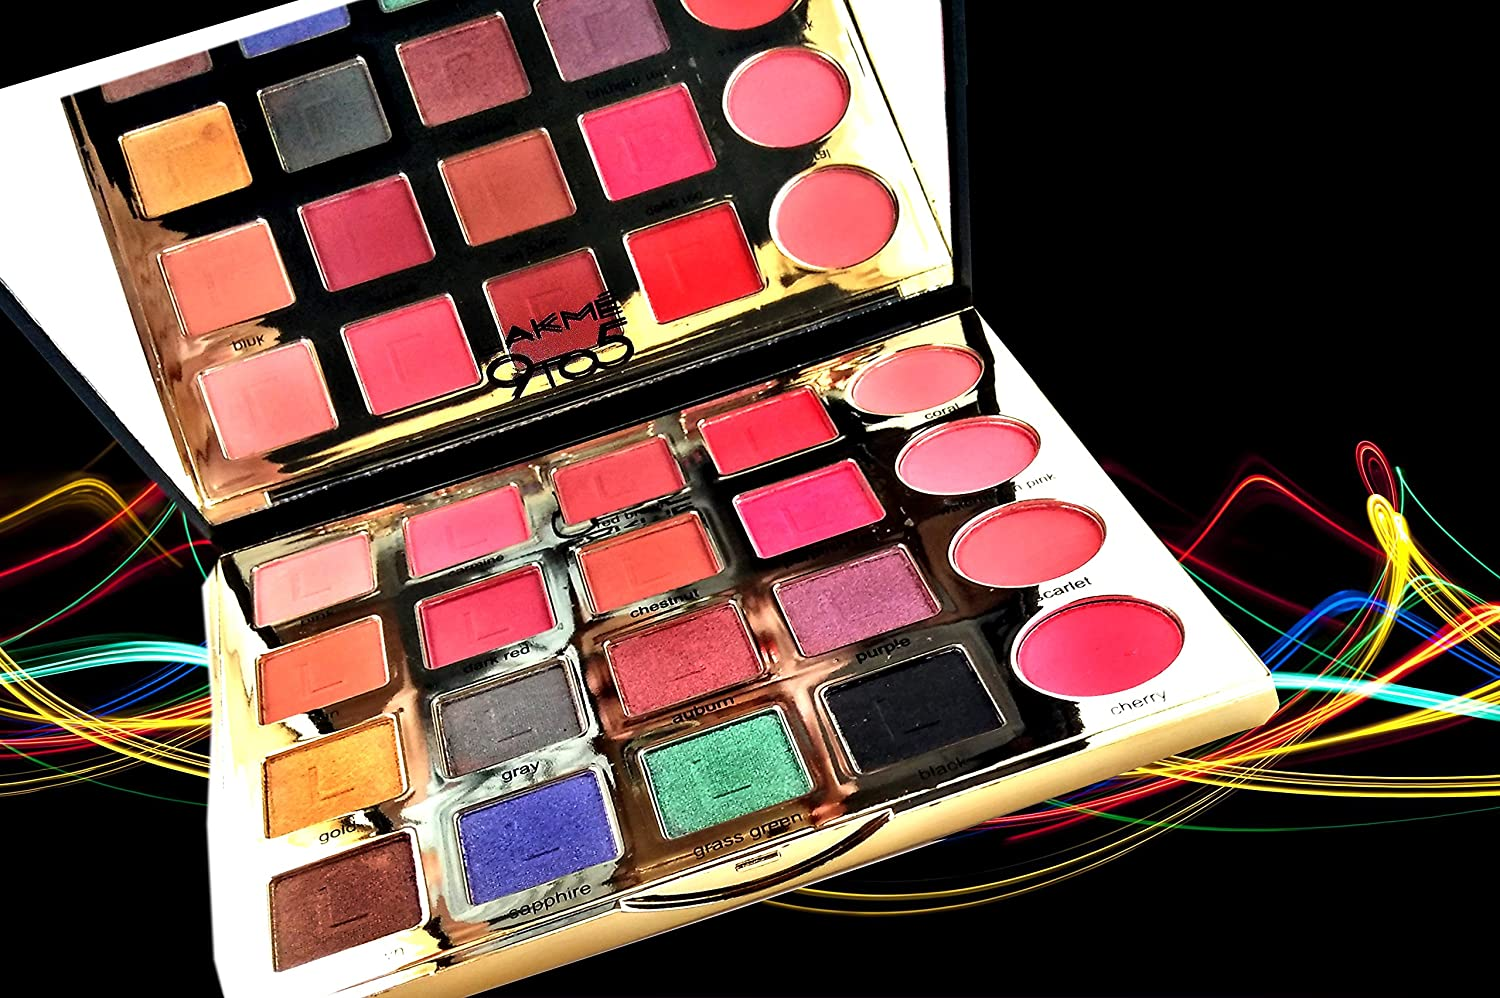 Amazon.com : Lakme dazzling, makeup kit with eyeshadows with real essential oil : Beauty